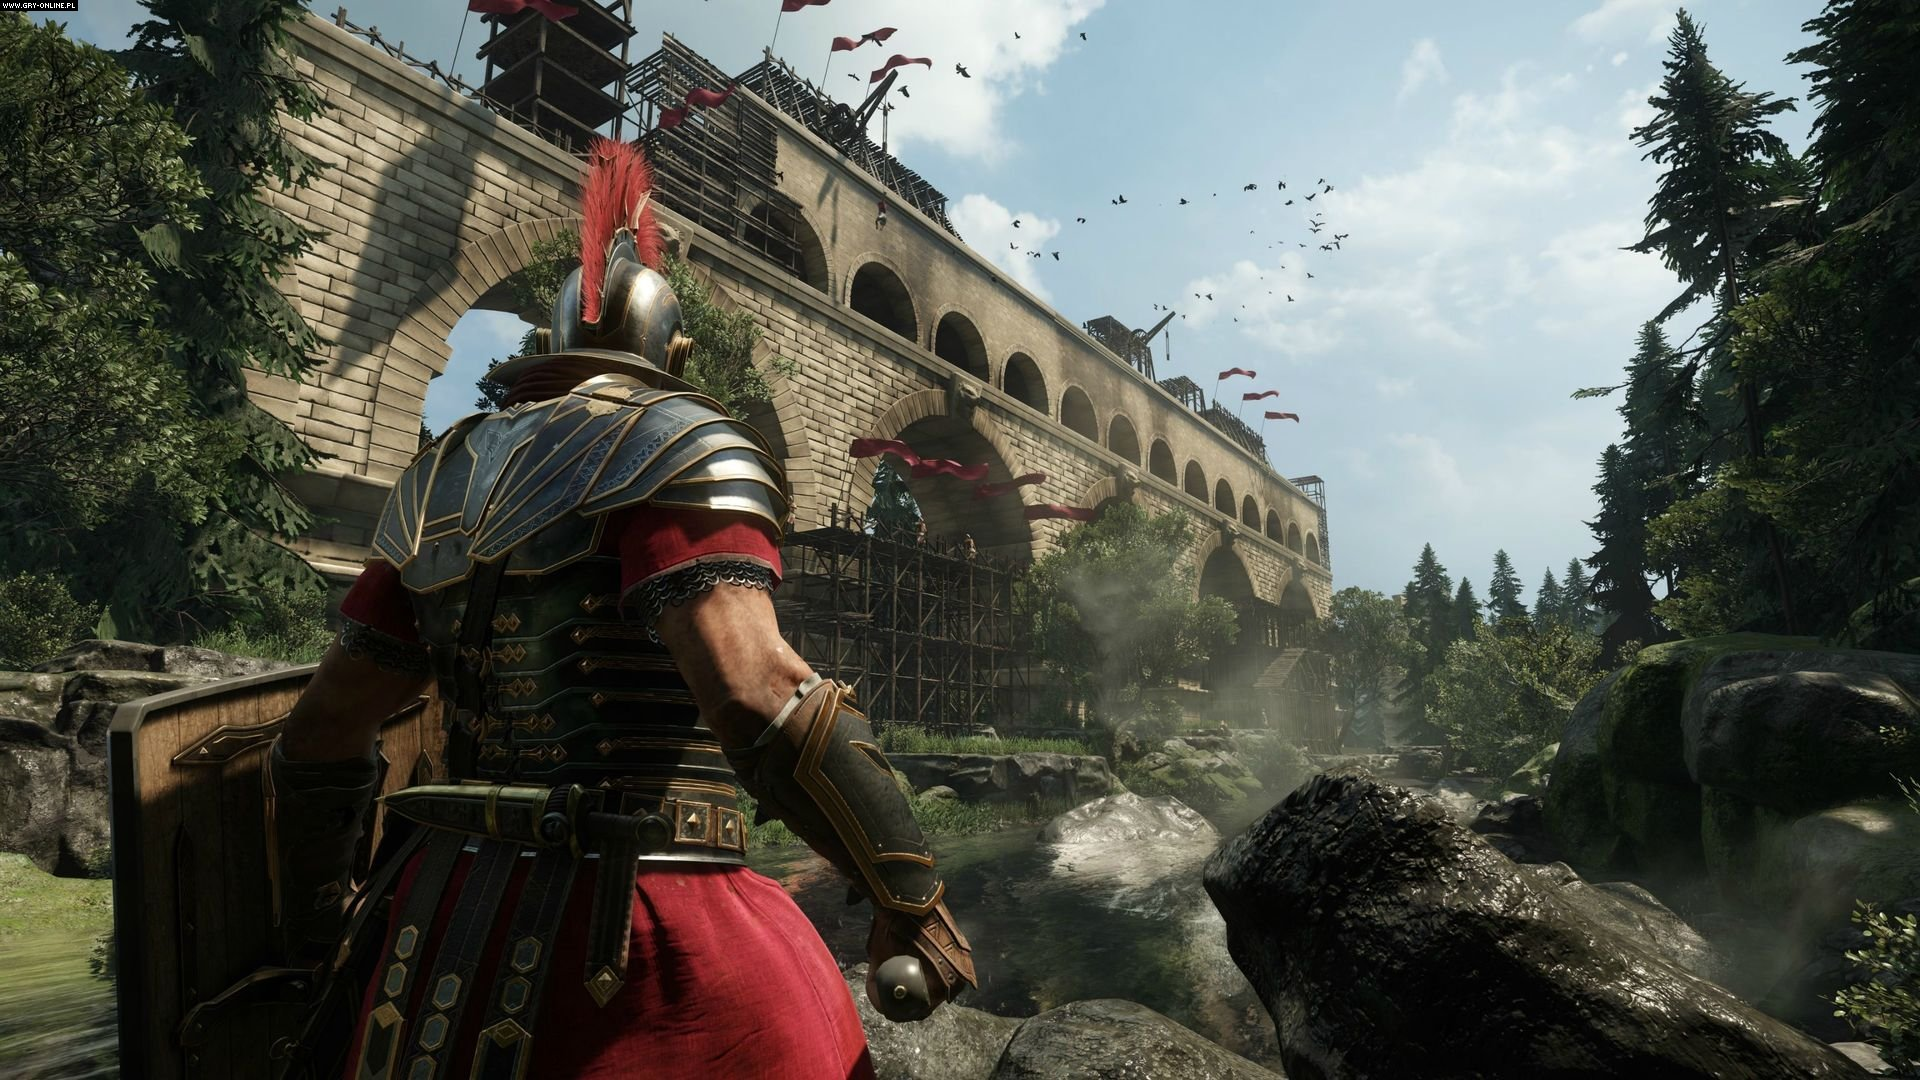 Ryse: Son of Rome PC, XONE Games Image 7/55, Crytek, Deep Silver / Koch Media